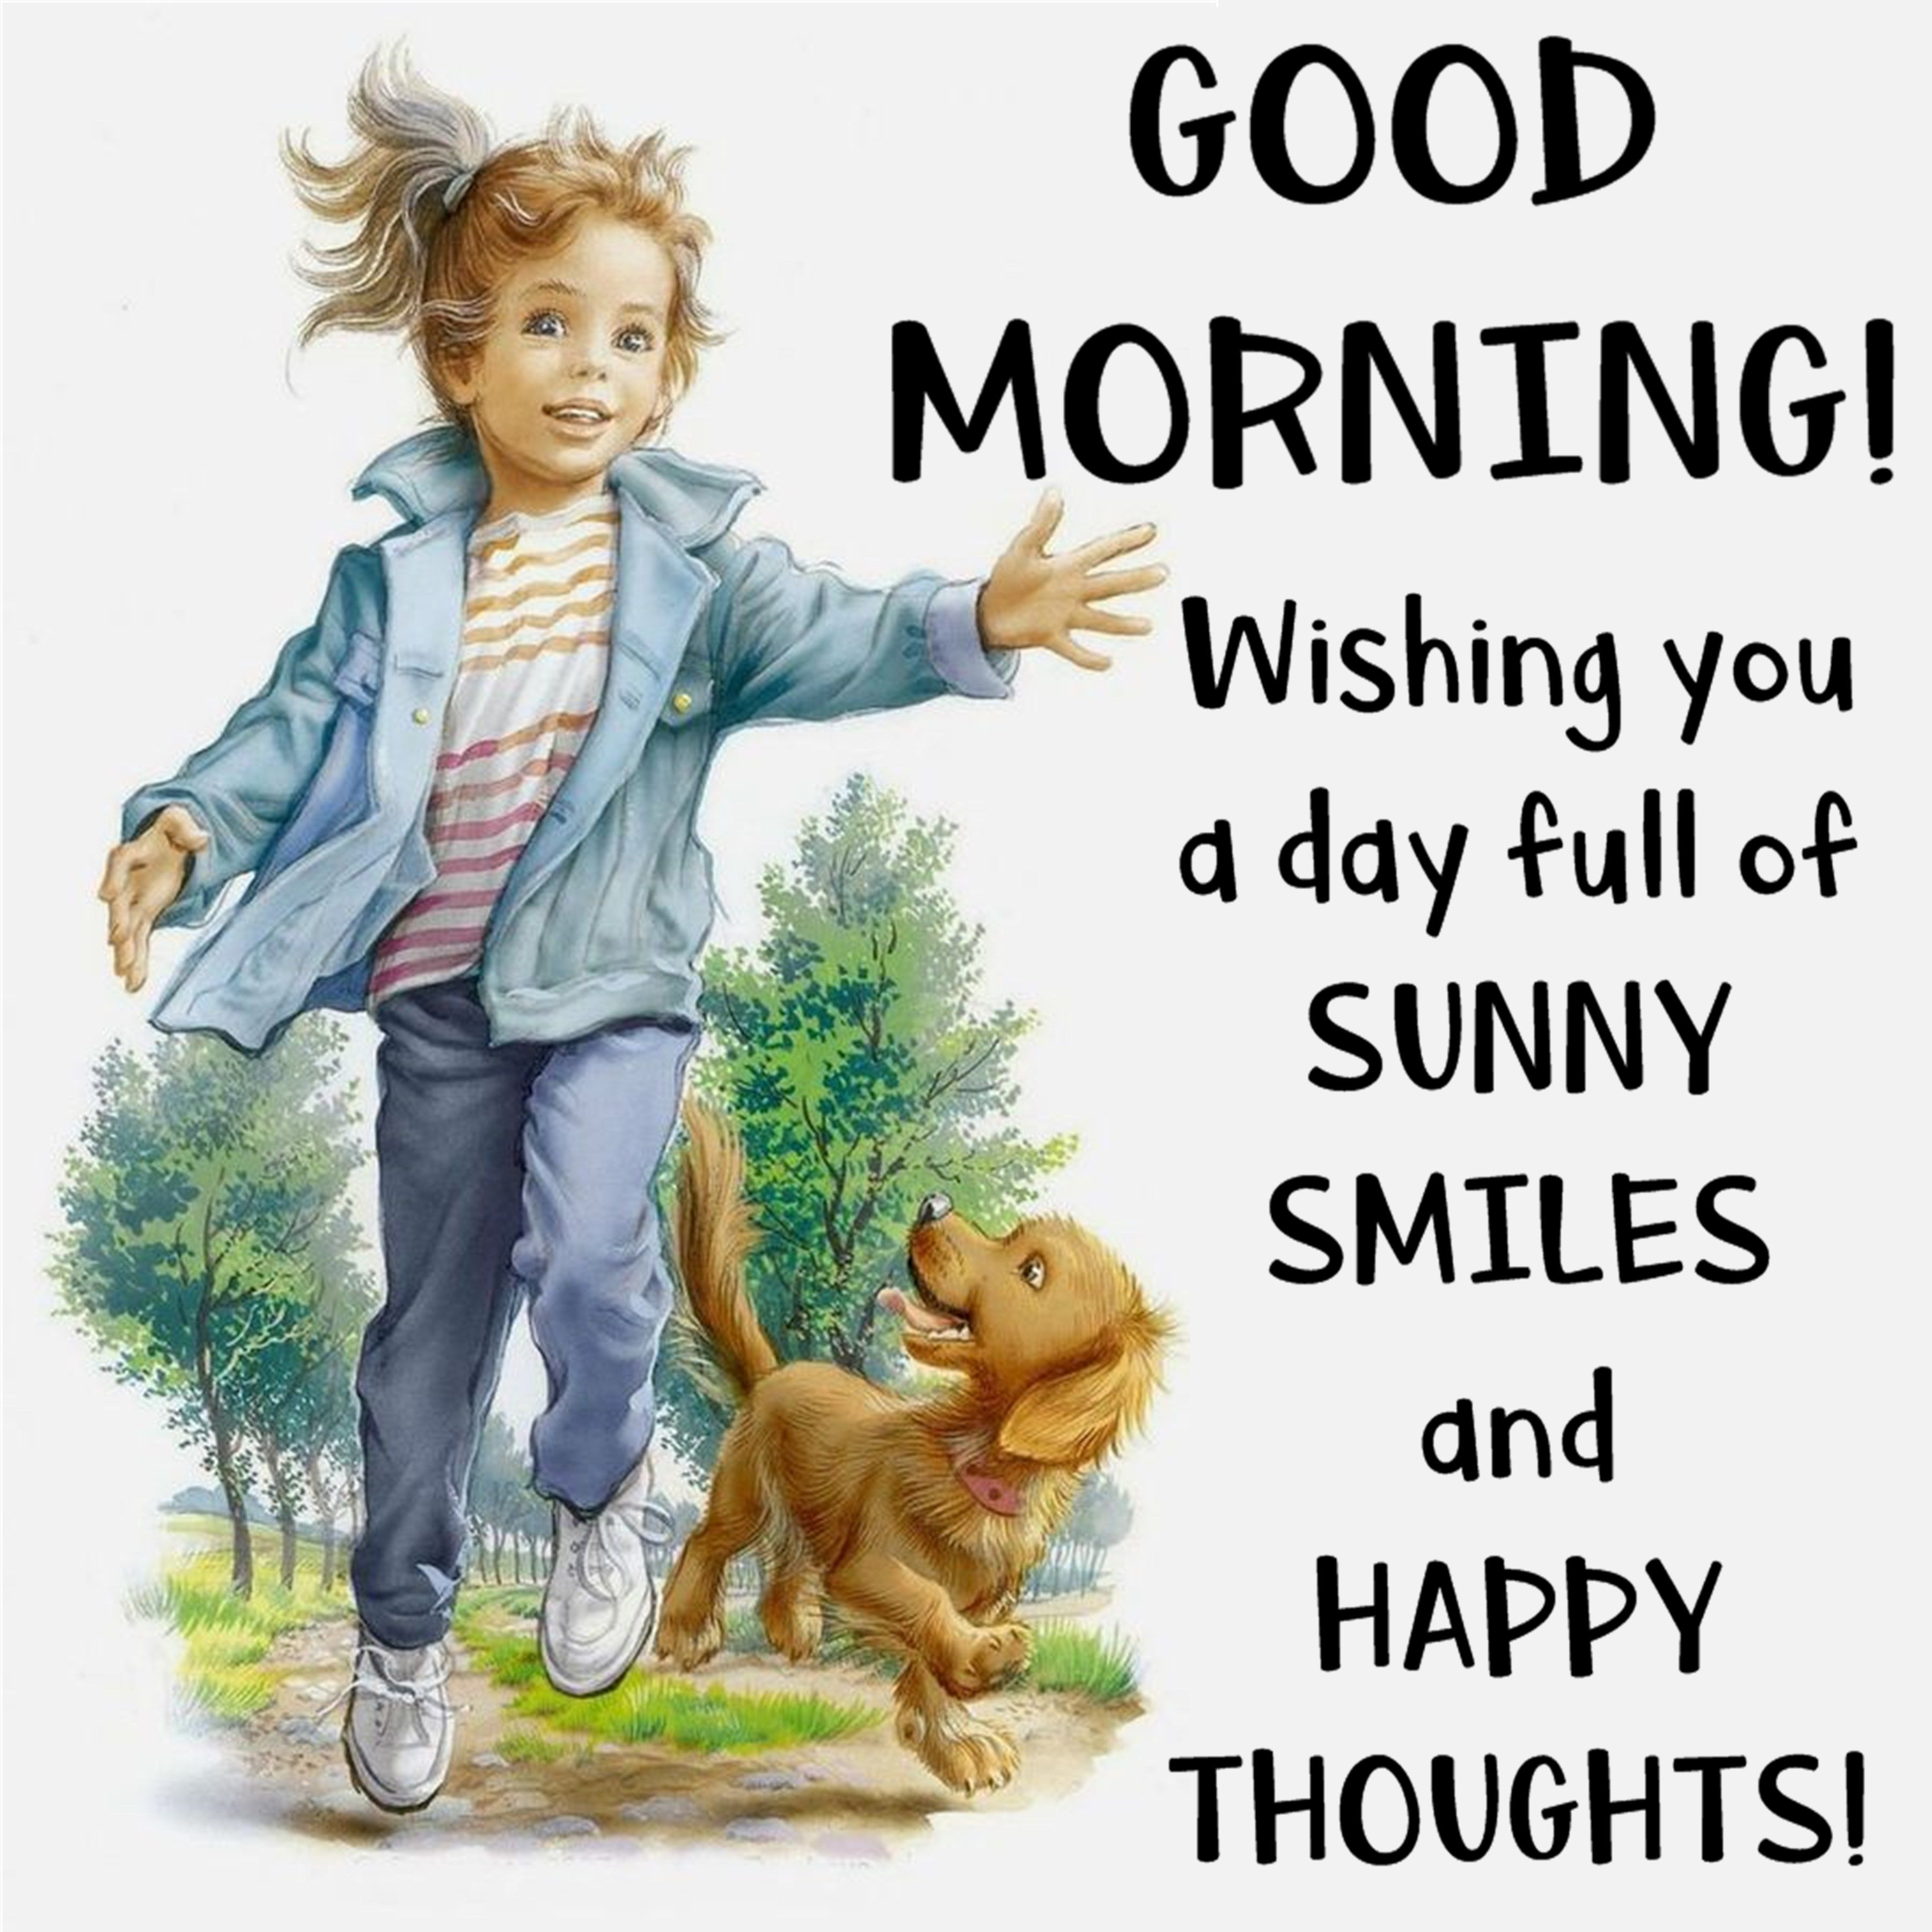 Good Morning Wishing You A Day Full Of Sunny Smiles And Happy Thoughts Morning Quotes Funny Happy Good Morning Quotes Cute Good Morning